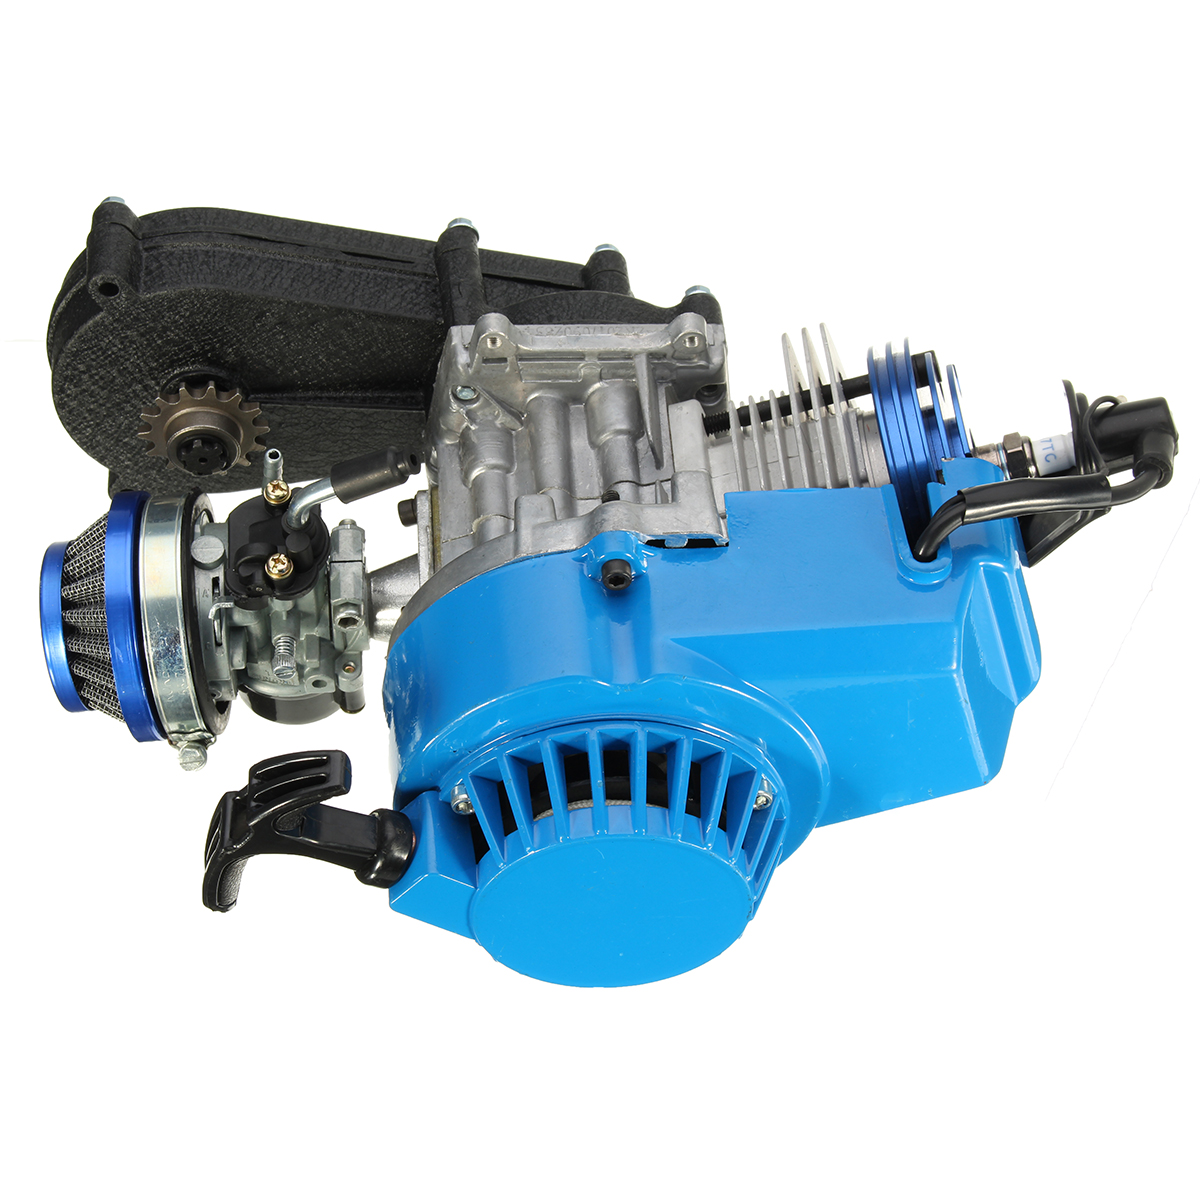 49CC 2 Stroke Engine Motor W/ CARB Air Filter Gear Box Mini Dirt Bike Quad ATV